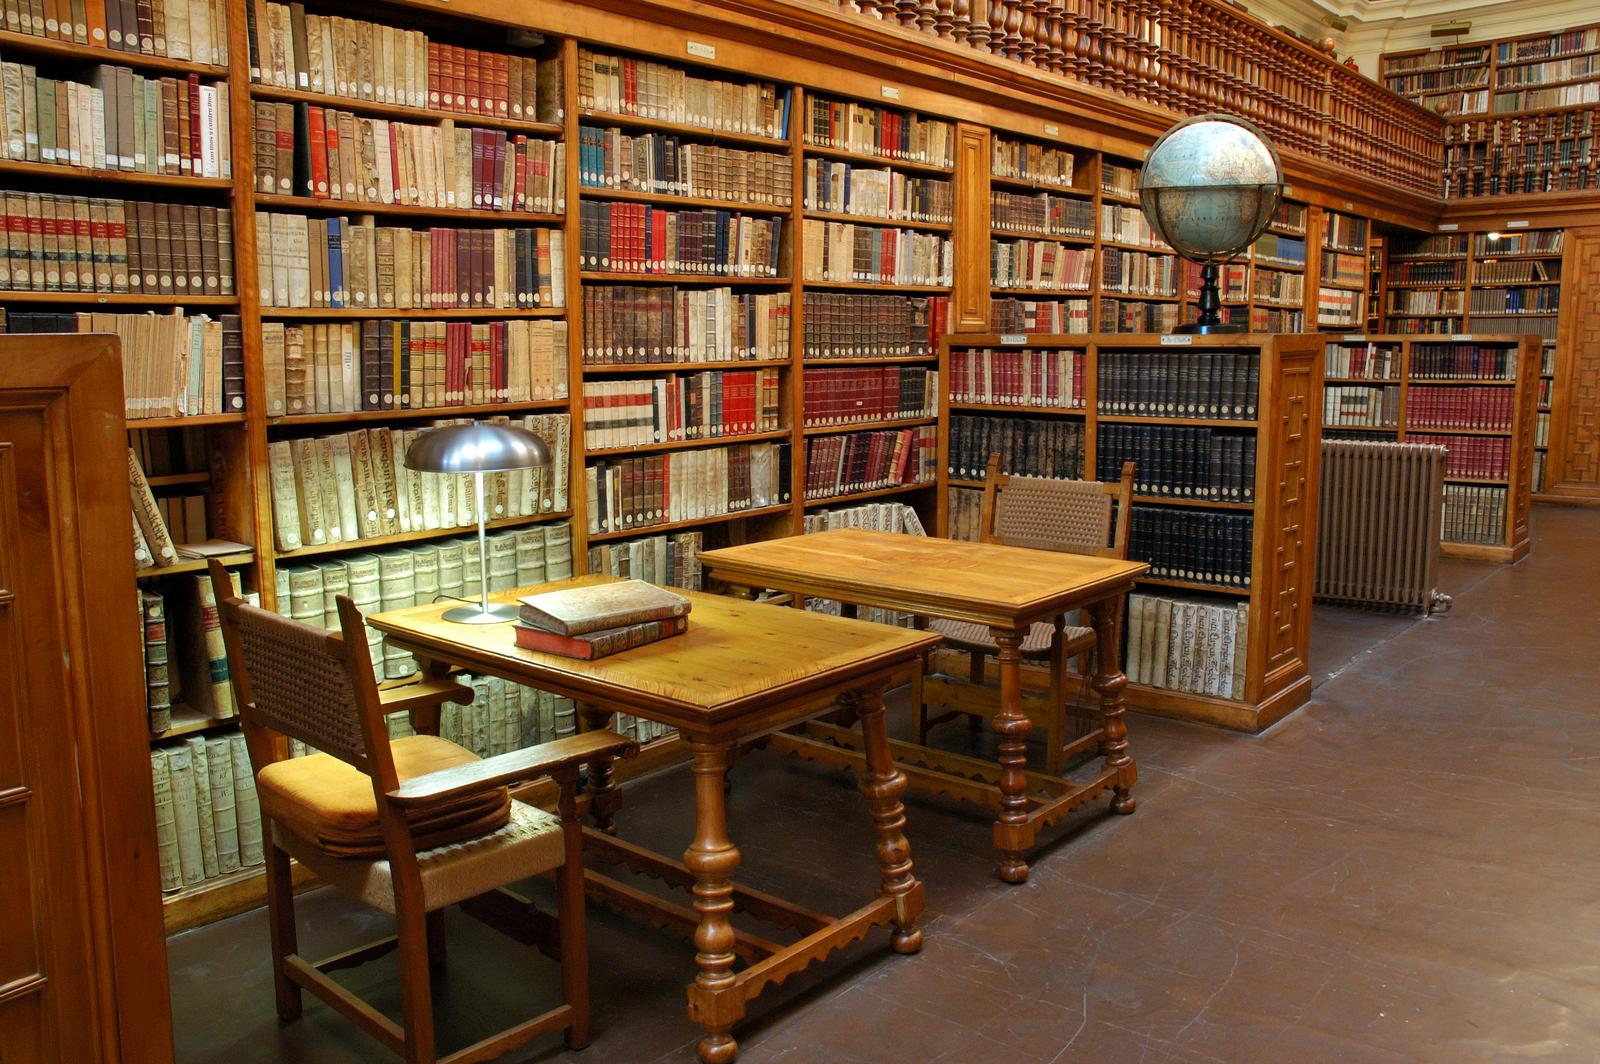 Libraries and Special Collections: Visiting the Biblioteca de Montserrat